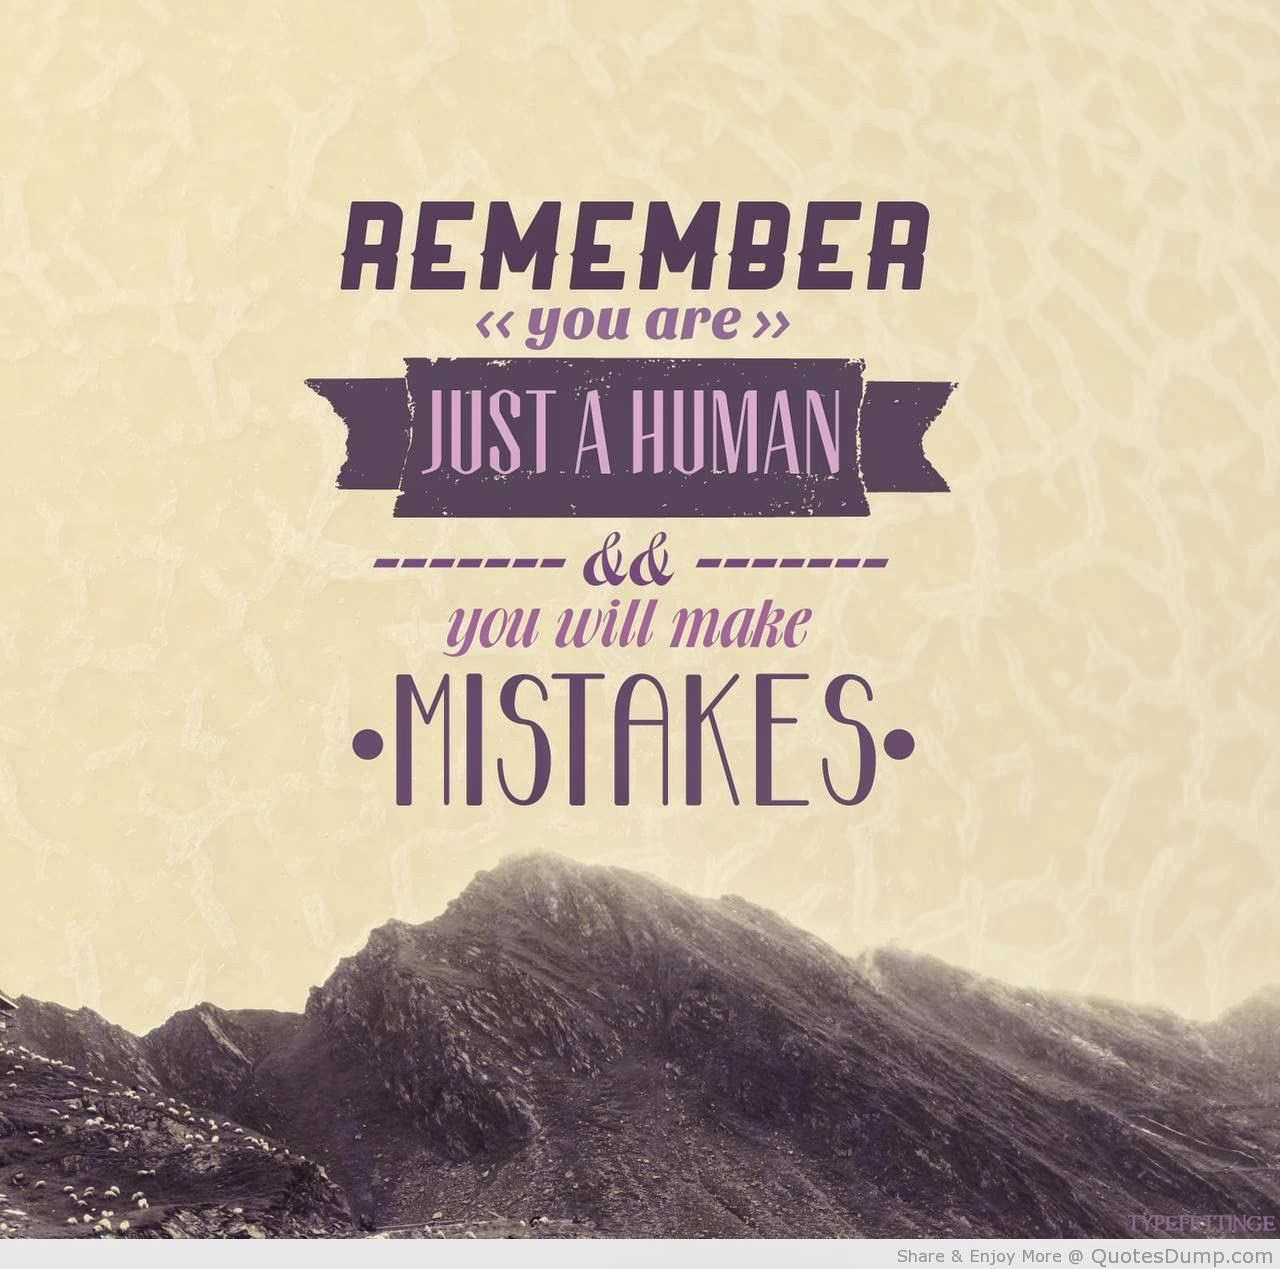 Past mistake